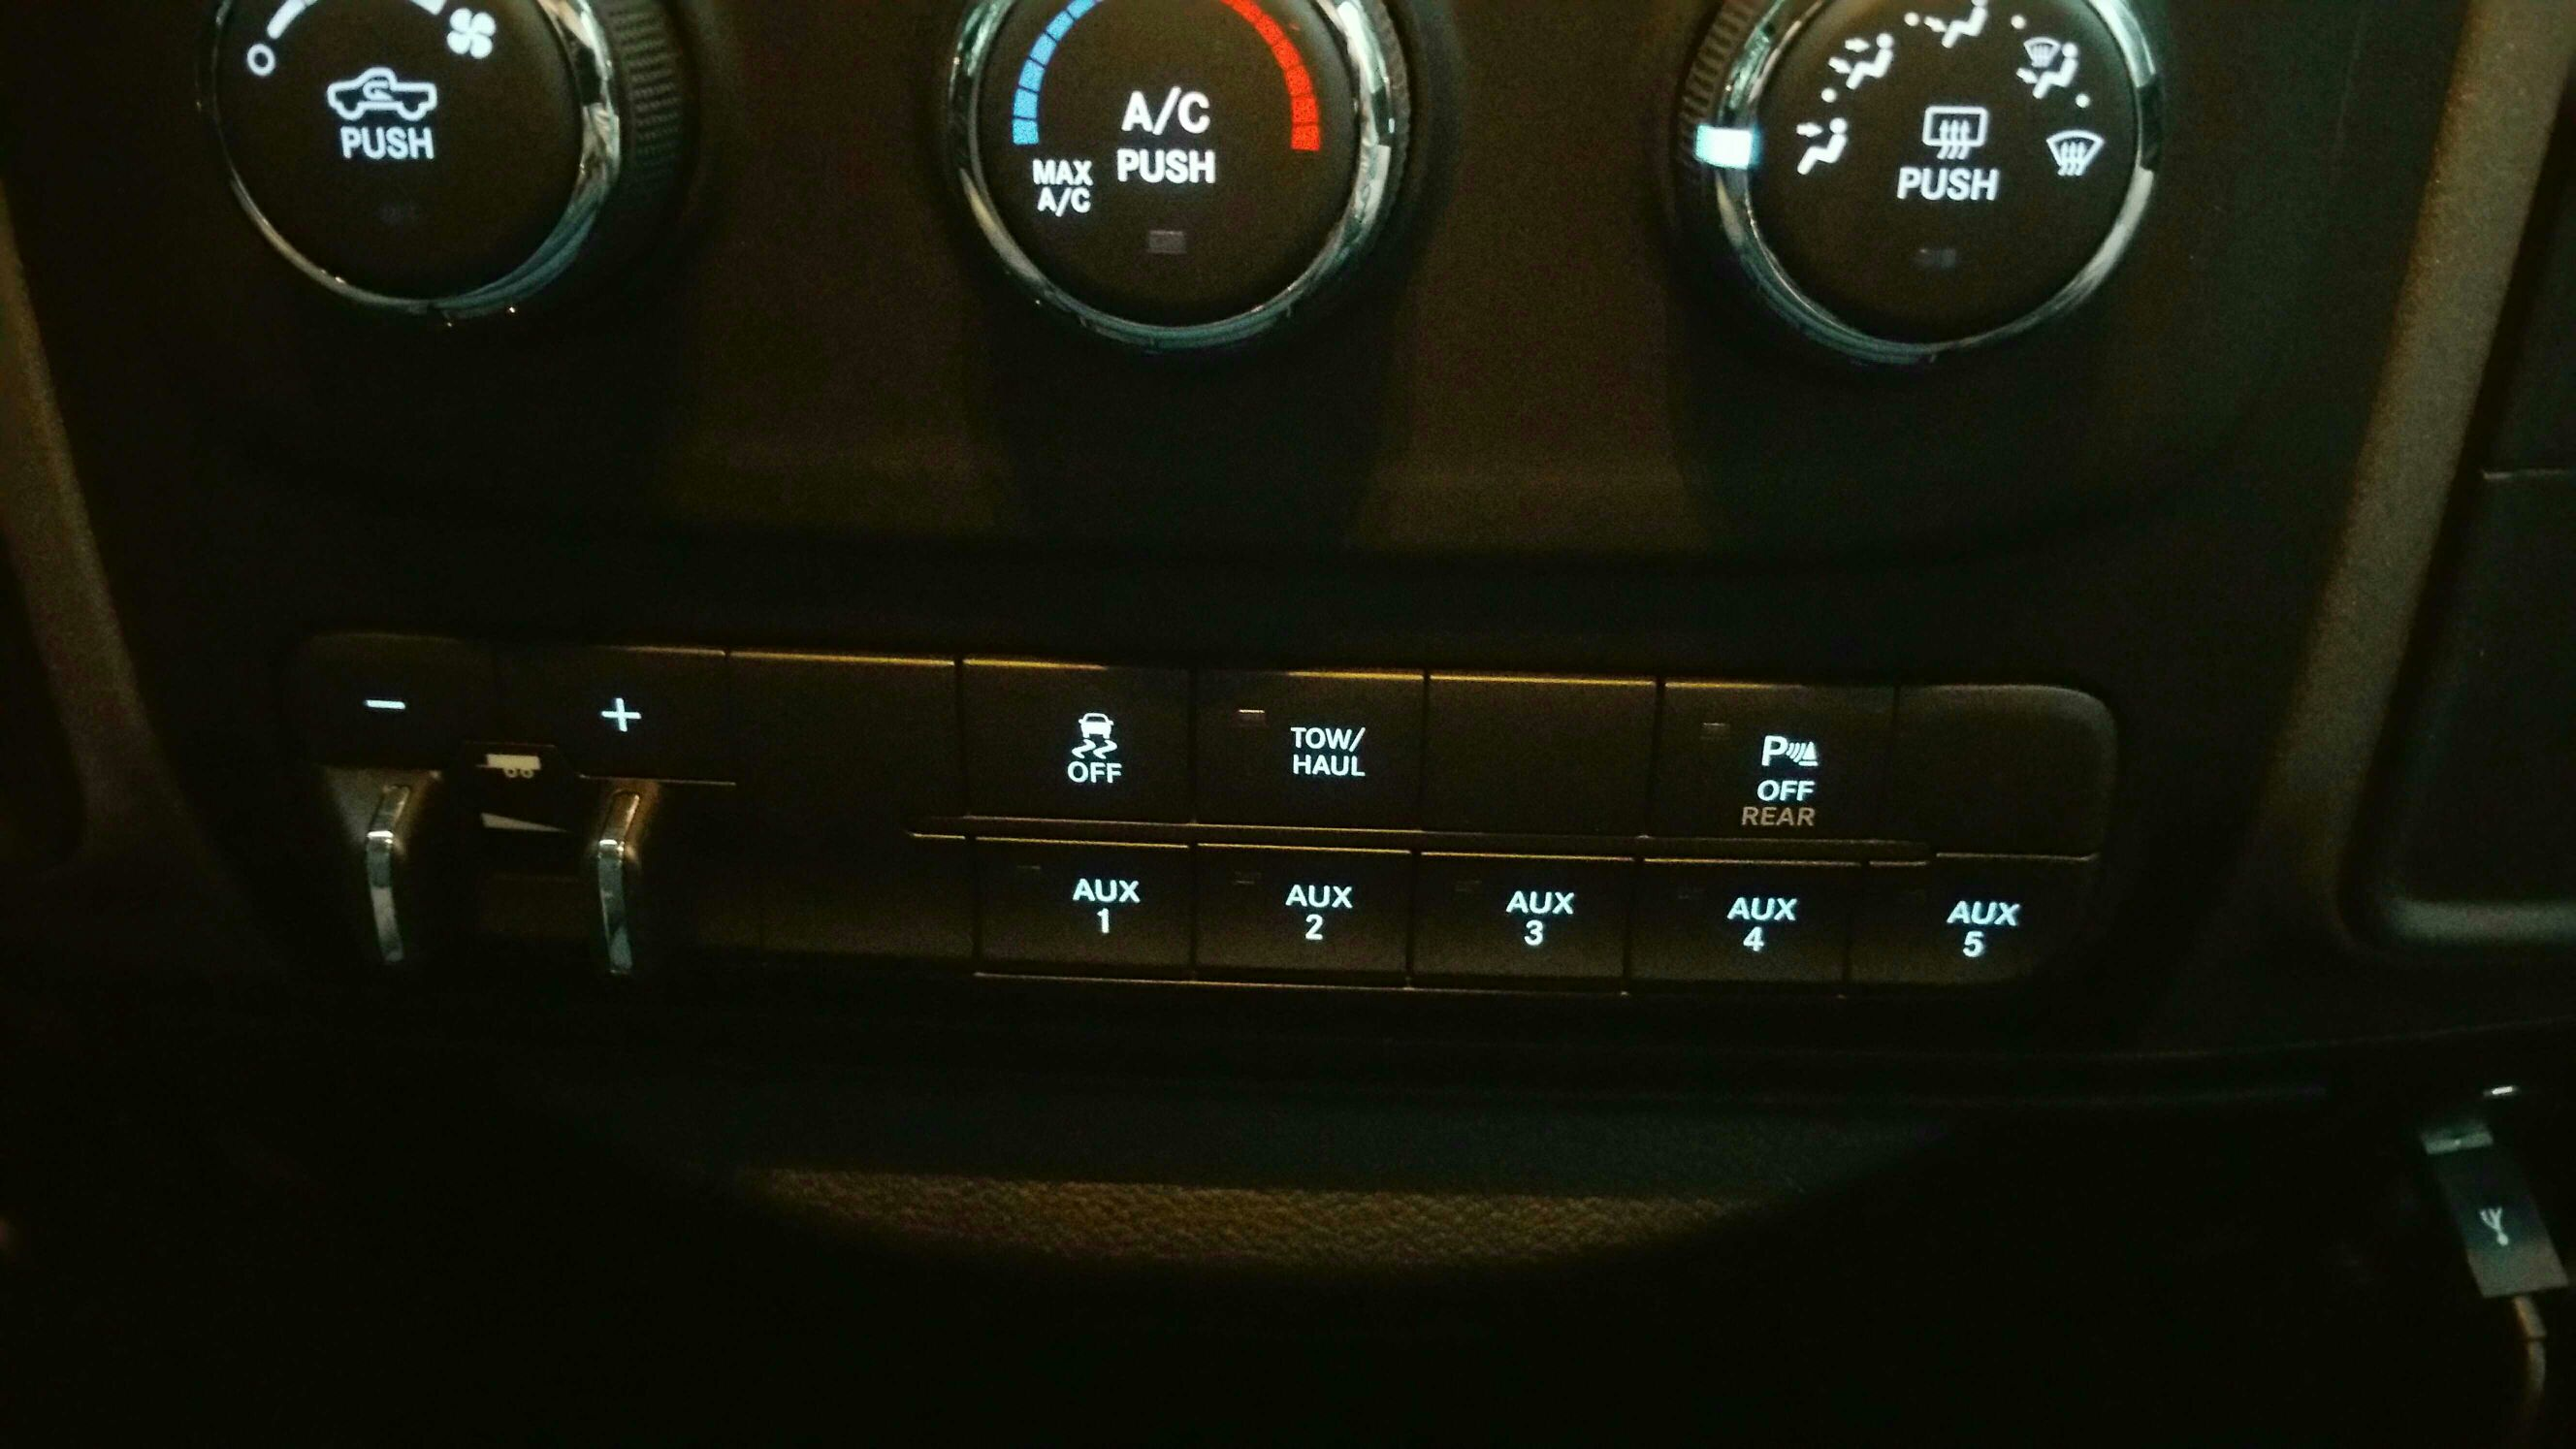 Need Help With The Auxiliary Switch Part Number